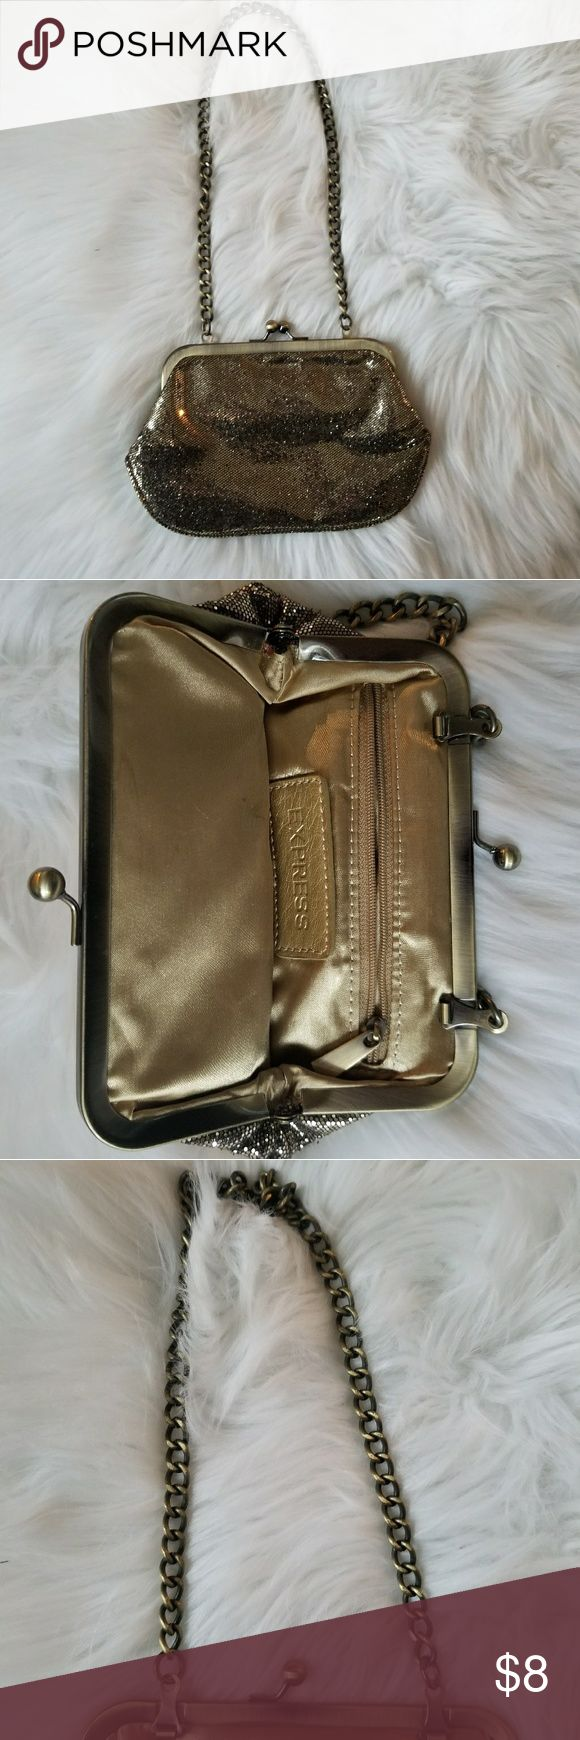 """Express Gold Sparkle Clutch Fun gold glitter clutch from express with bronze straps. Perfect for a night out or new years eve. Gold satin interior with a few marks as pictured in photos but otherwise in perfect condition. Clutch/purse is 5""""H x 8""""W with 11"""" straps. Express Bags Clutches & Wristlets"""